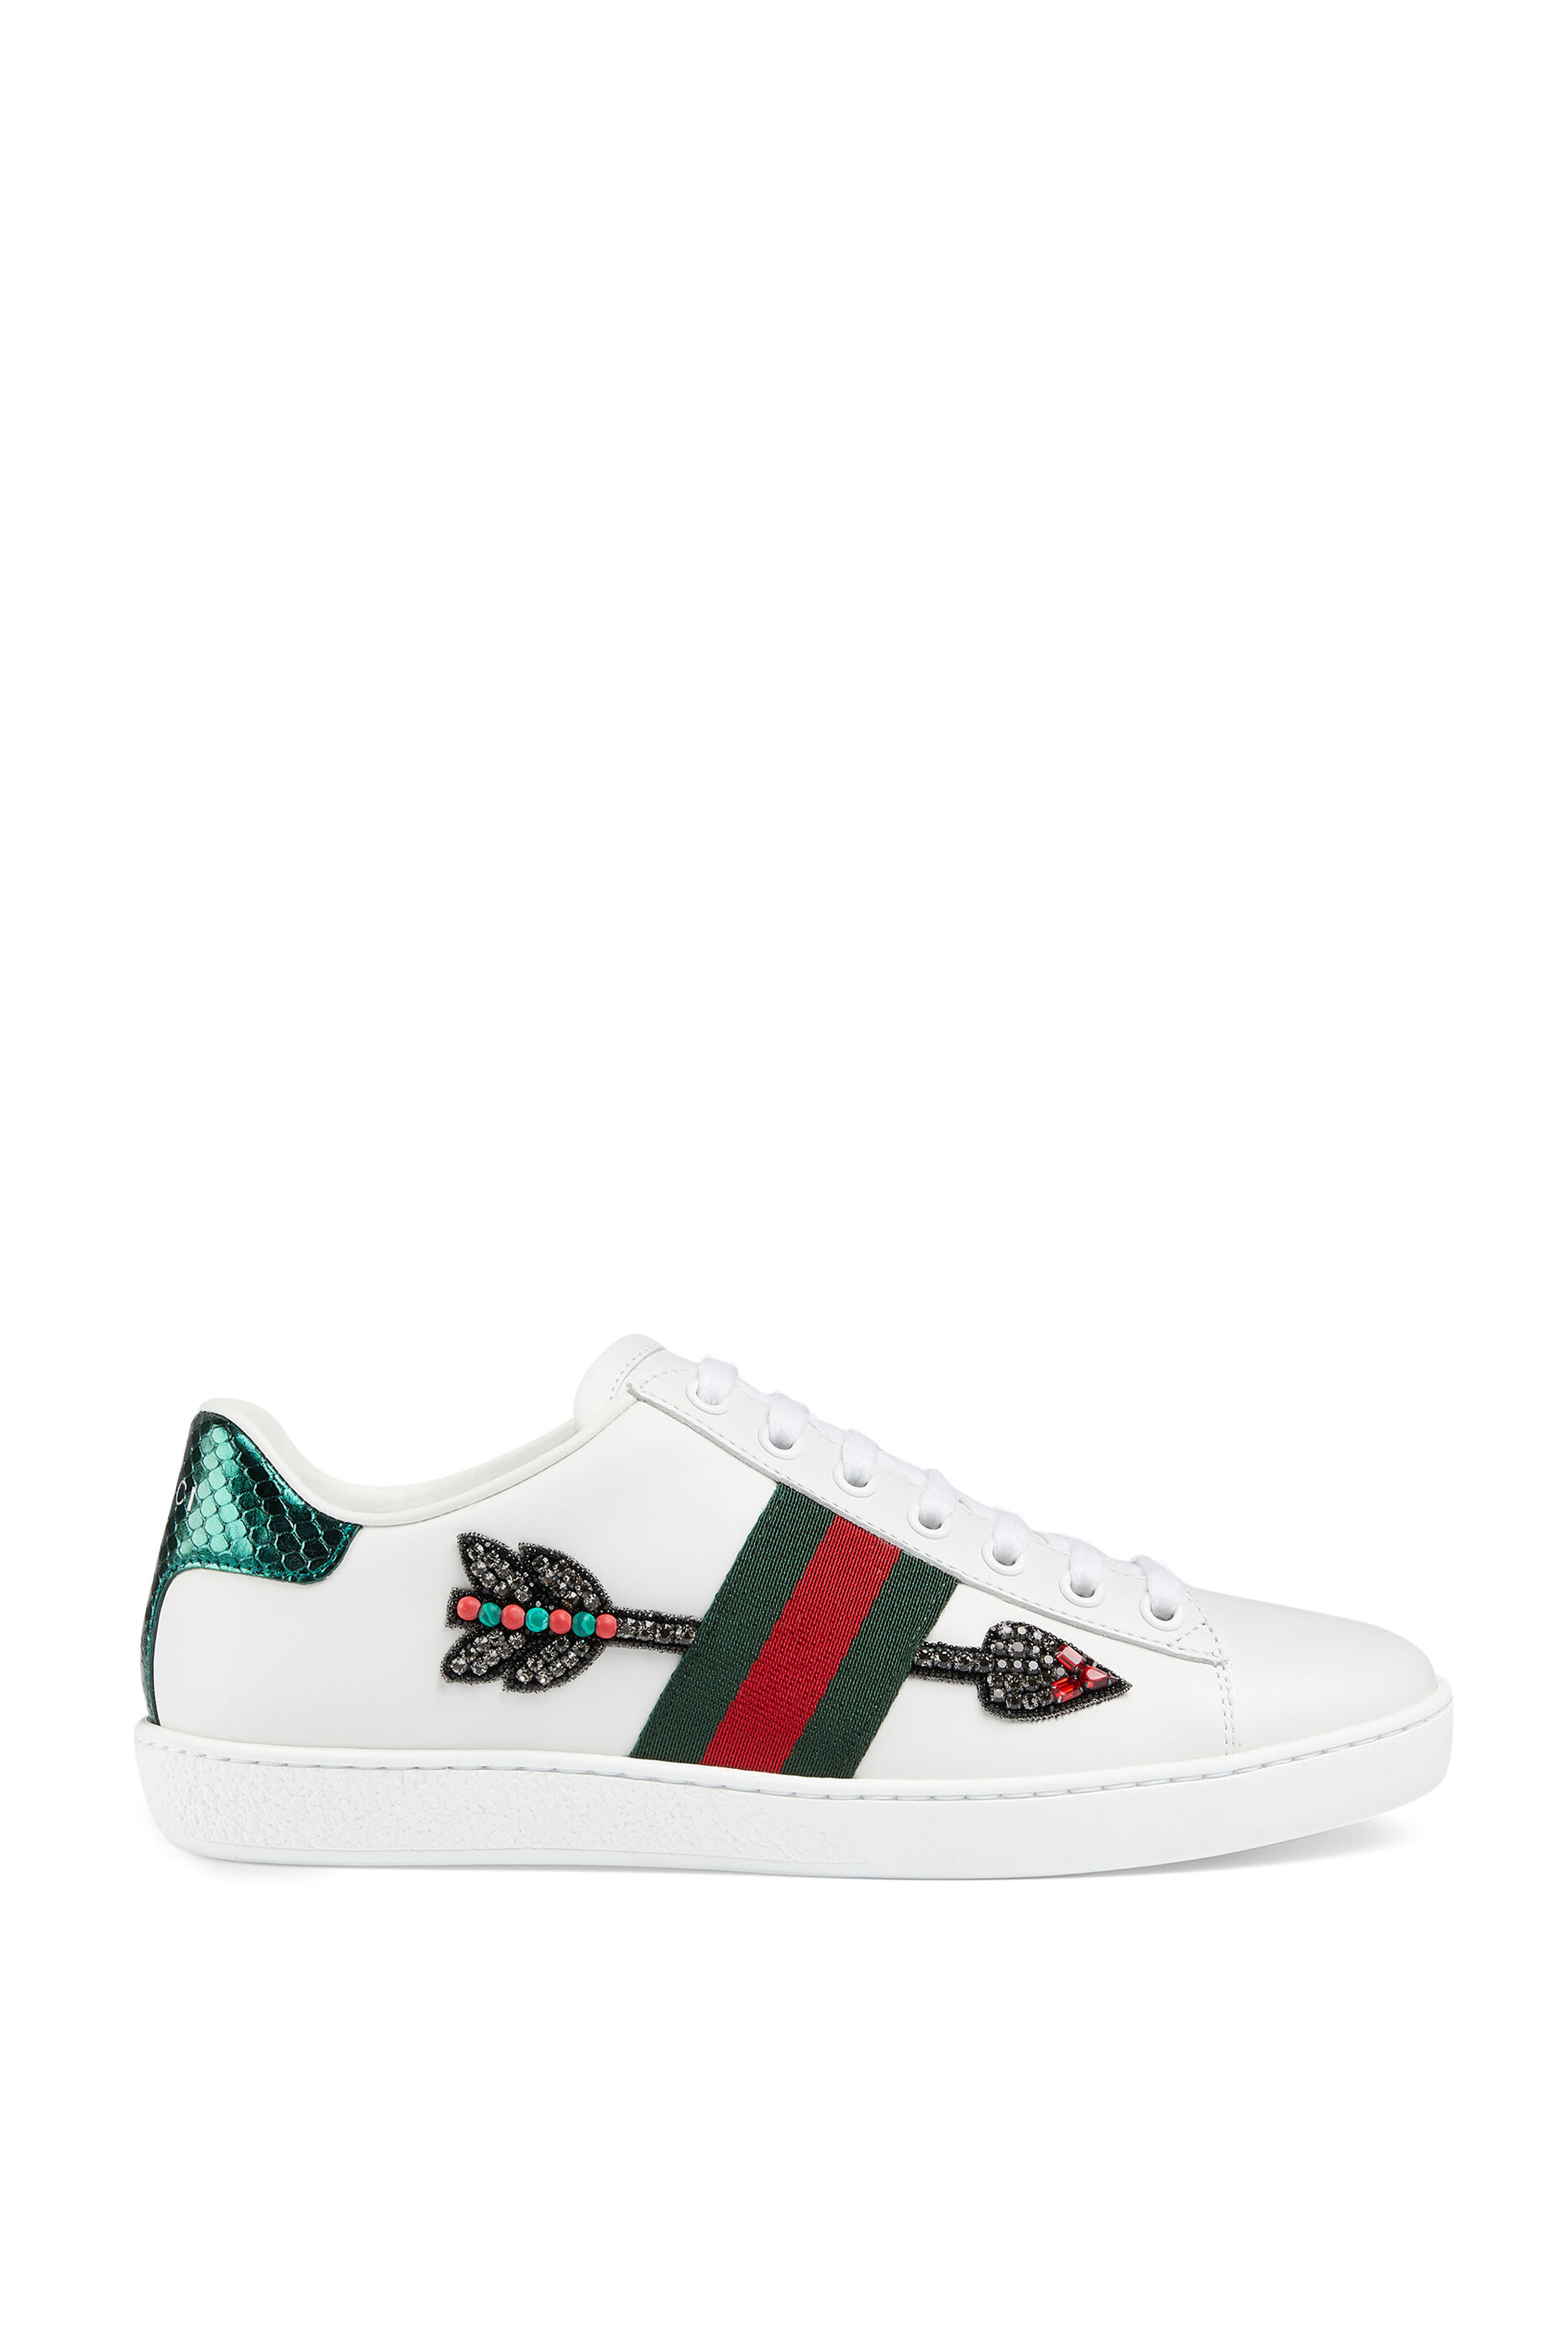 Buy Gucci Ace Embroidered Sneakers